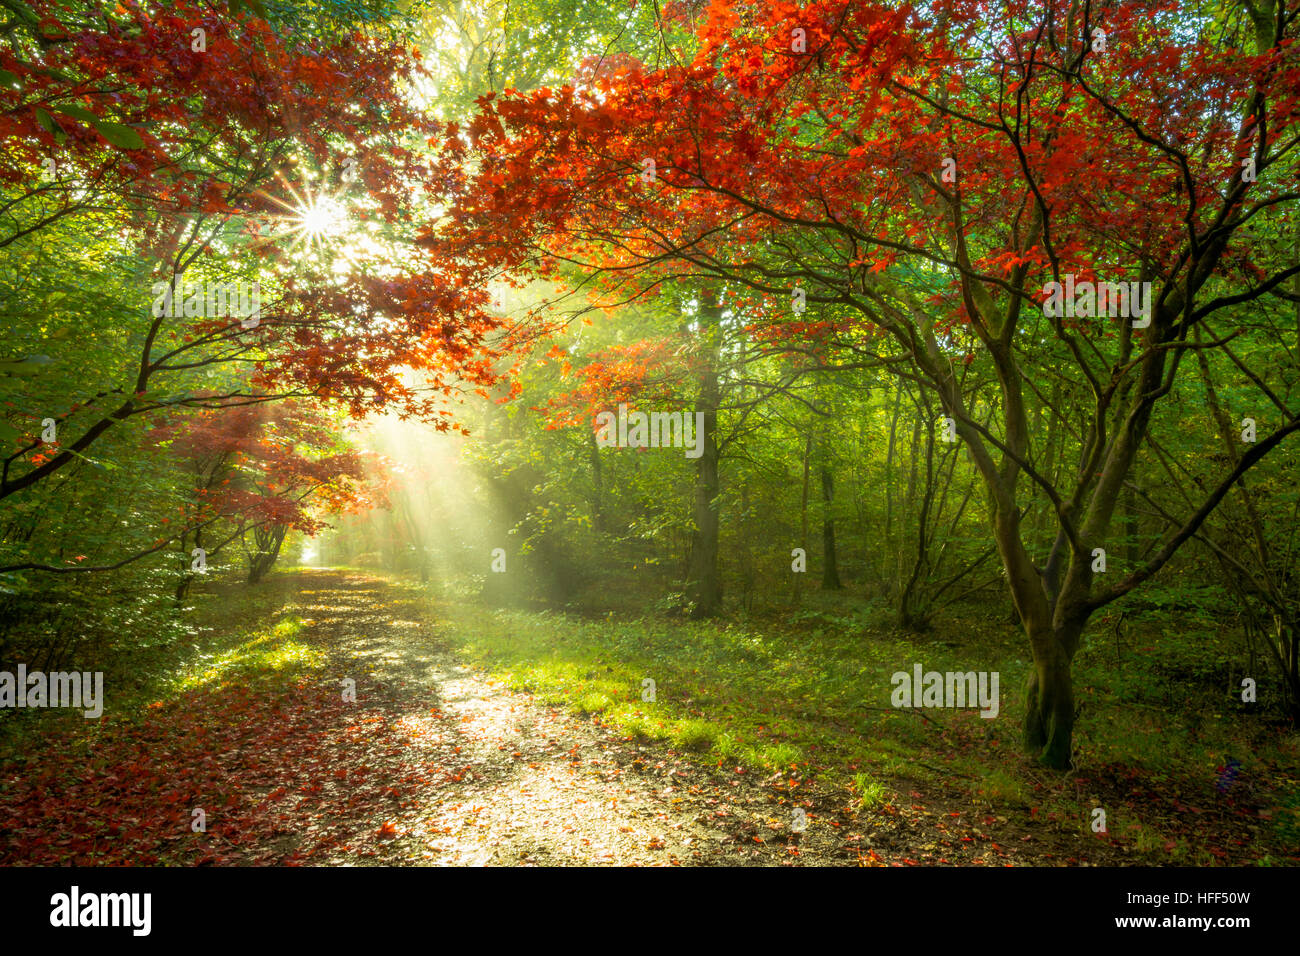 Acer Trees Stock Photos & Acer Trees Stock Images - Alamy